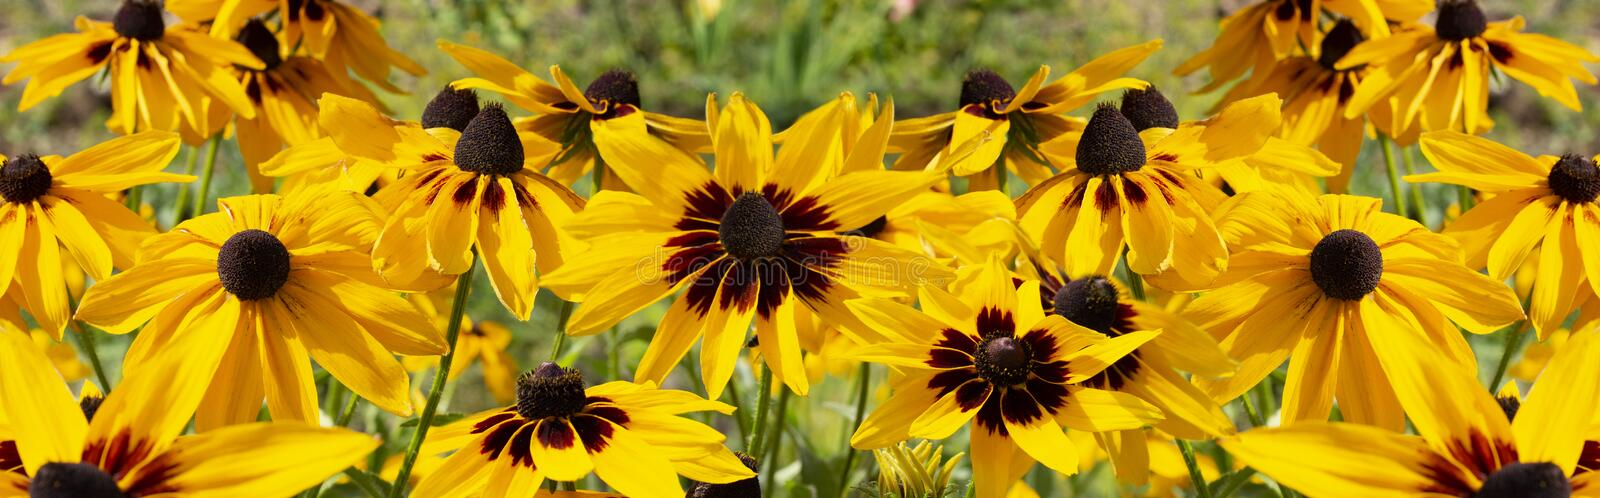 Black-eyed Susan Rudbeckia hirta yellow flower, panorama banner background wallpaper. royalty free stock images